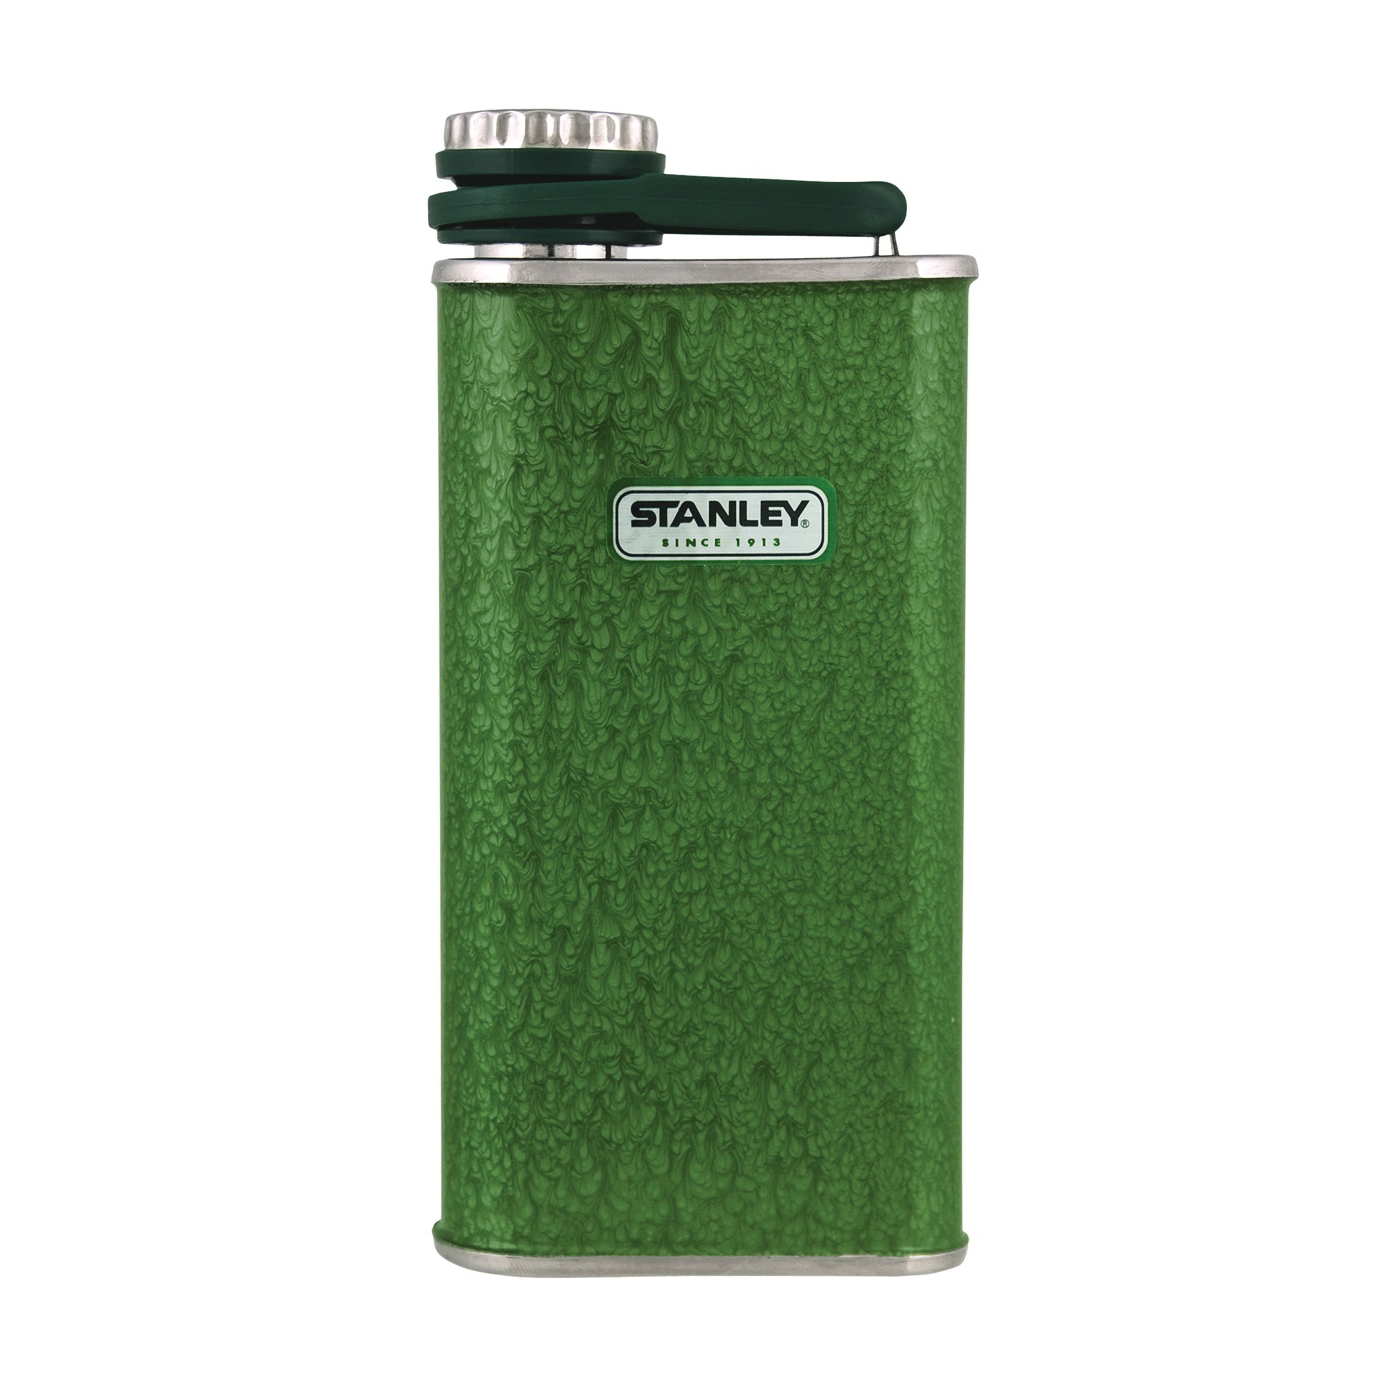 Picture of STANLEY Classic 10-00837-045 Flask, 8 oz Capacity, Stainless Steel, Hammertone Green